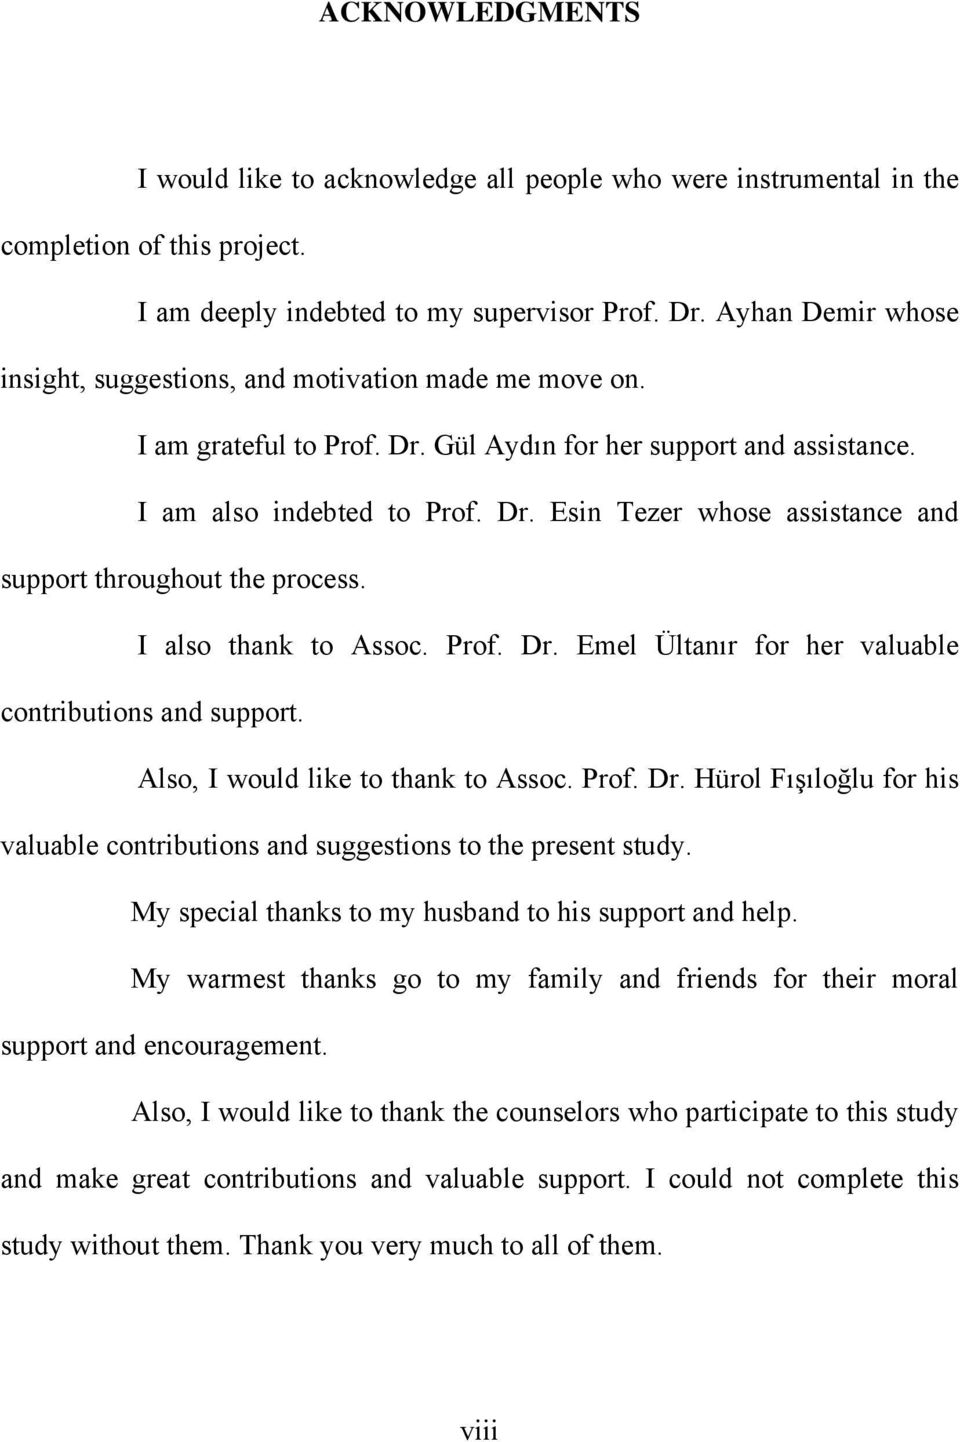 I also thank to Assoc. Prof. Dr. Emel Ültanır for her valuable contributions and support. Also, I would like to thank to Assoc. Prof. Dr. Hürol Fışıloğlu for his valuable contributions and suggestions to the present study.